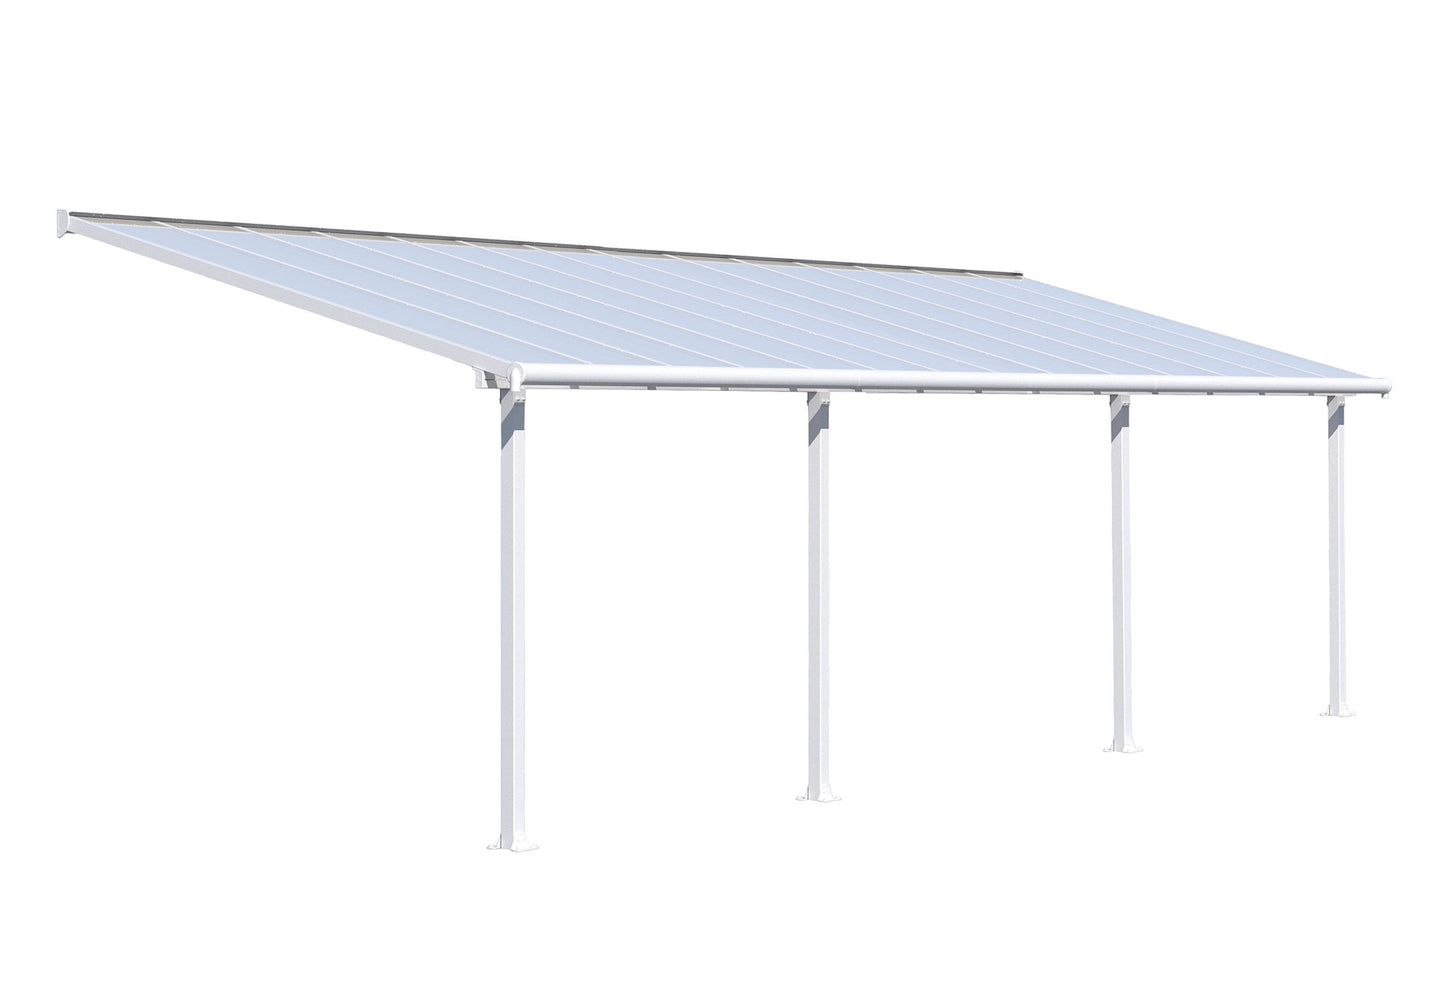 Palram Olympia 10' x 30' Patio Cover - White/white